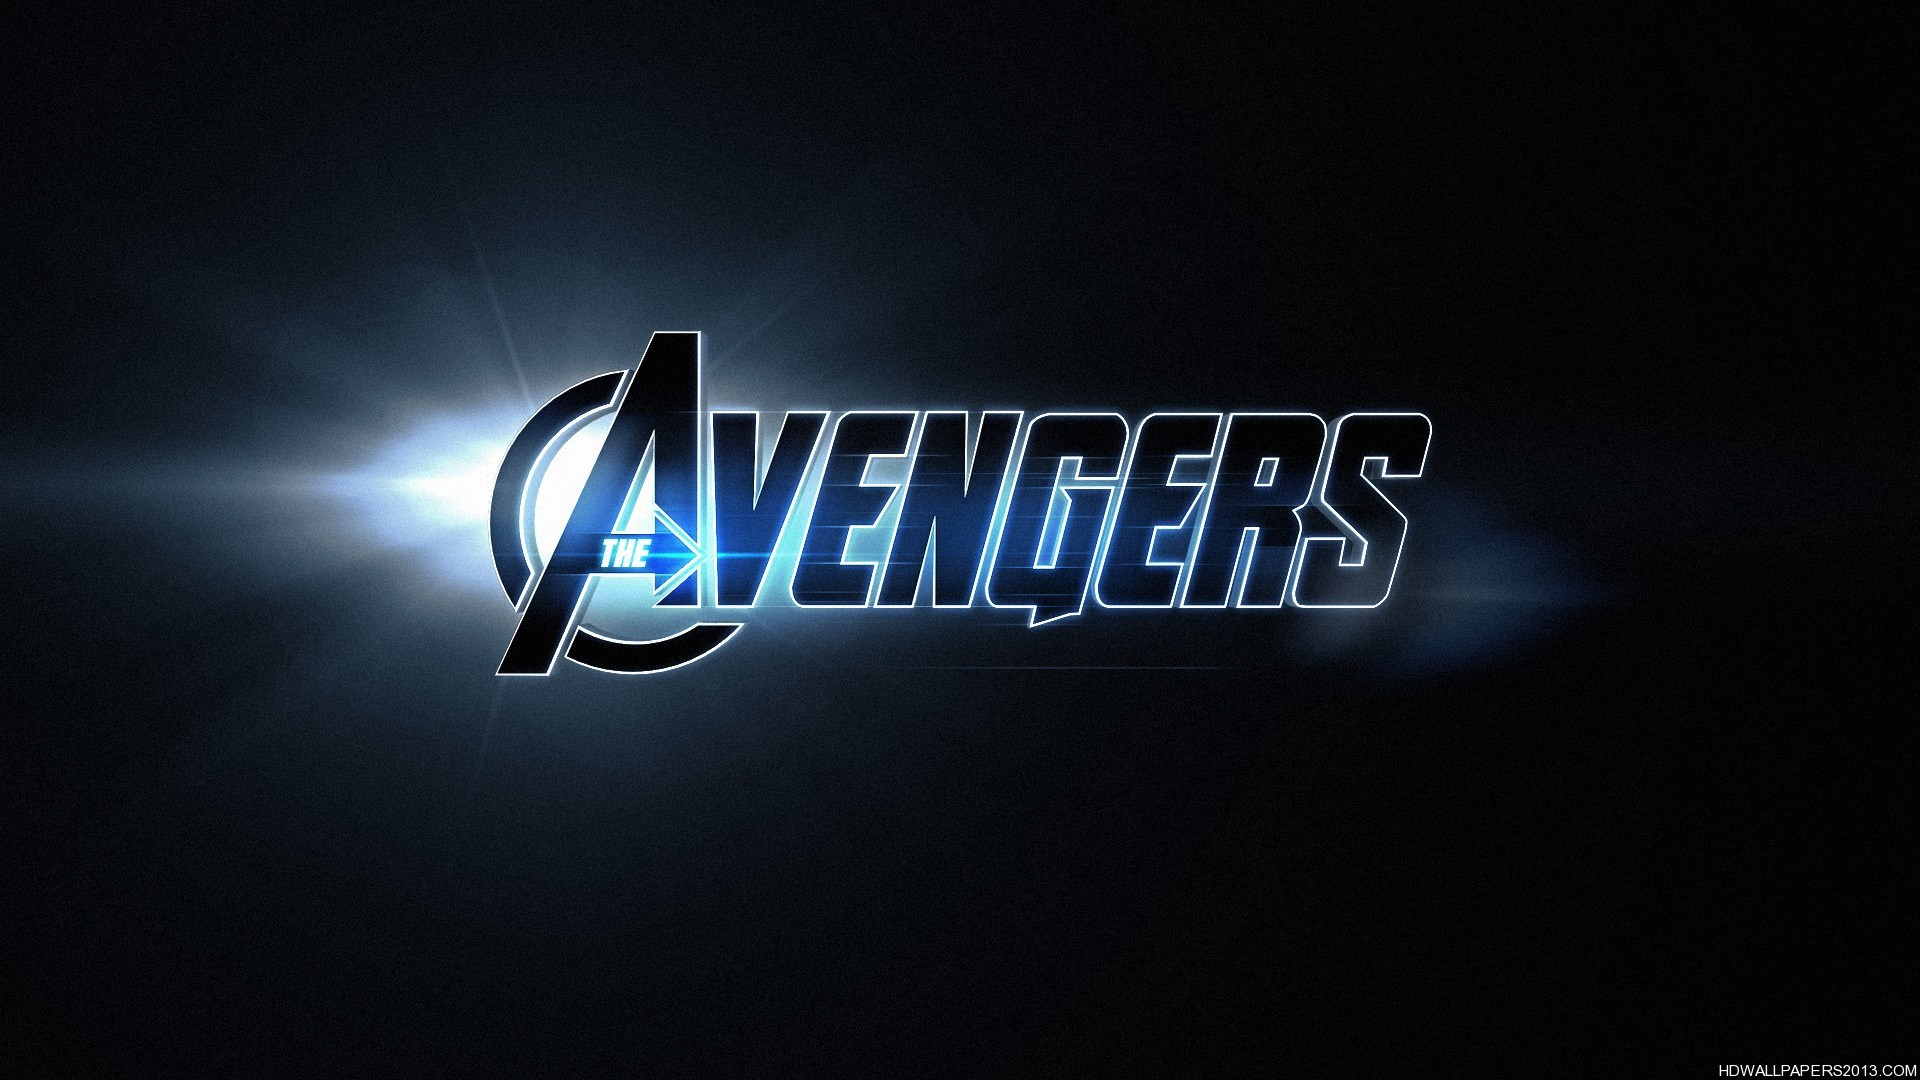 1920x1080 The Avengers Logo Wallpaper